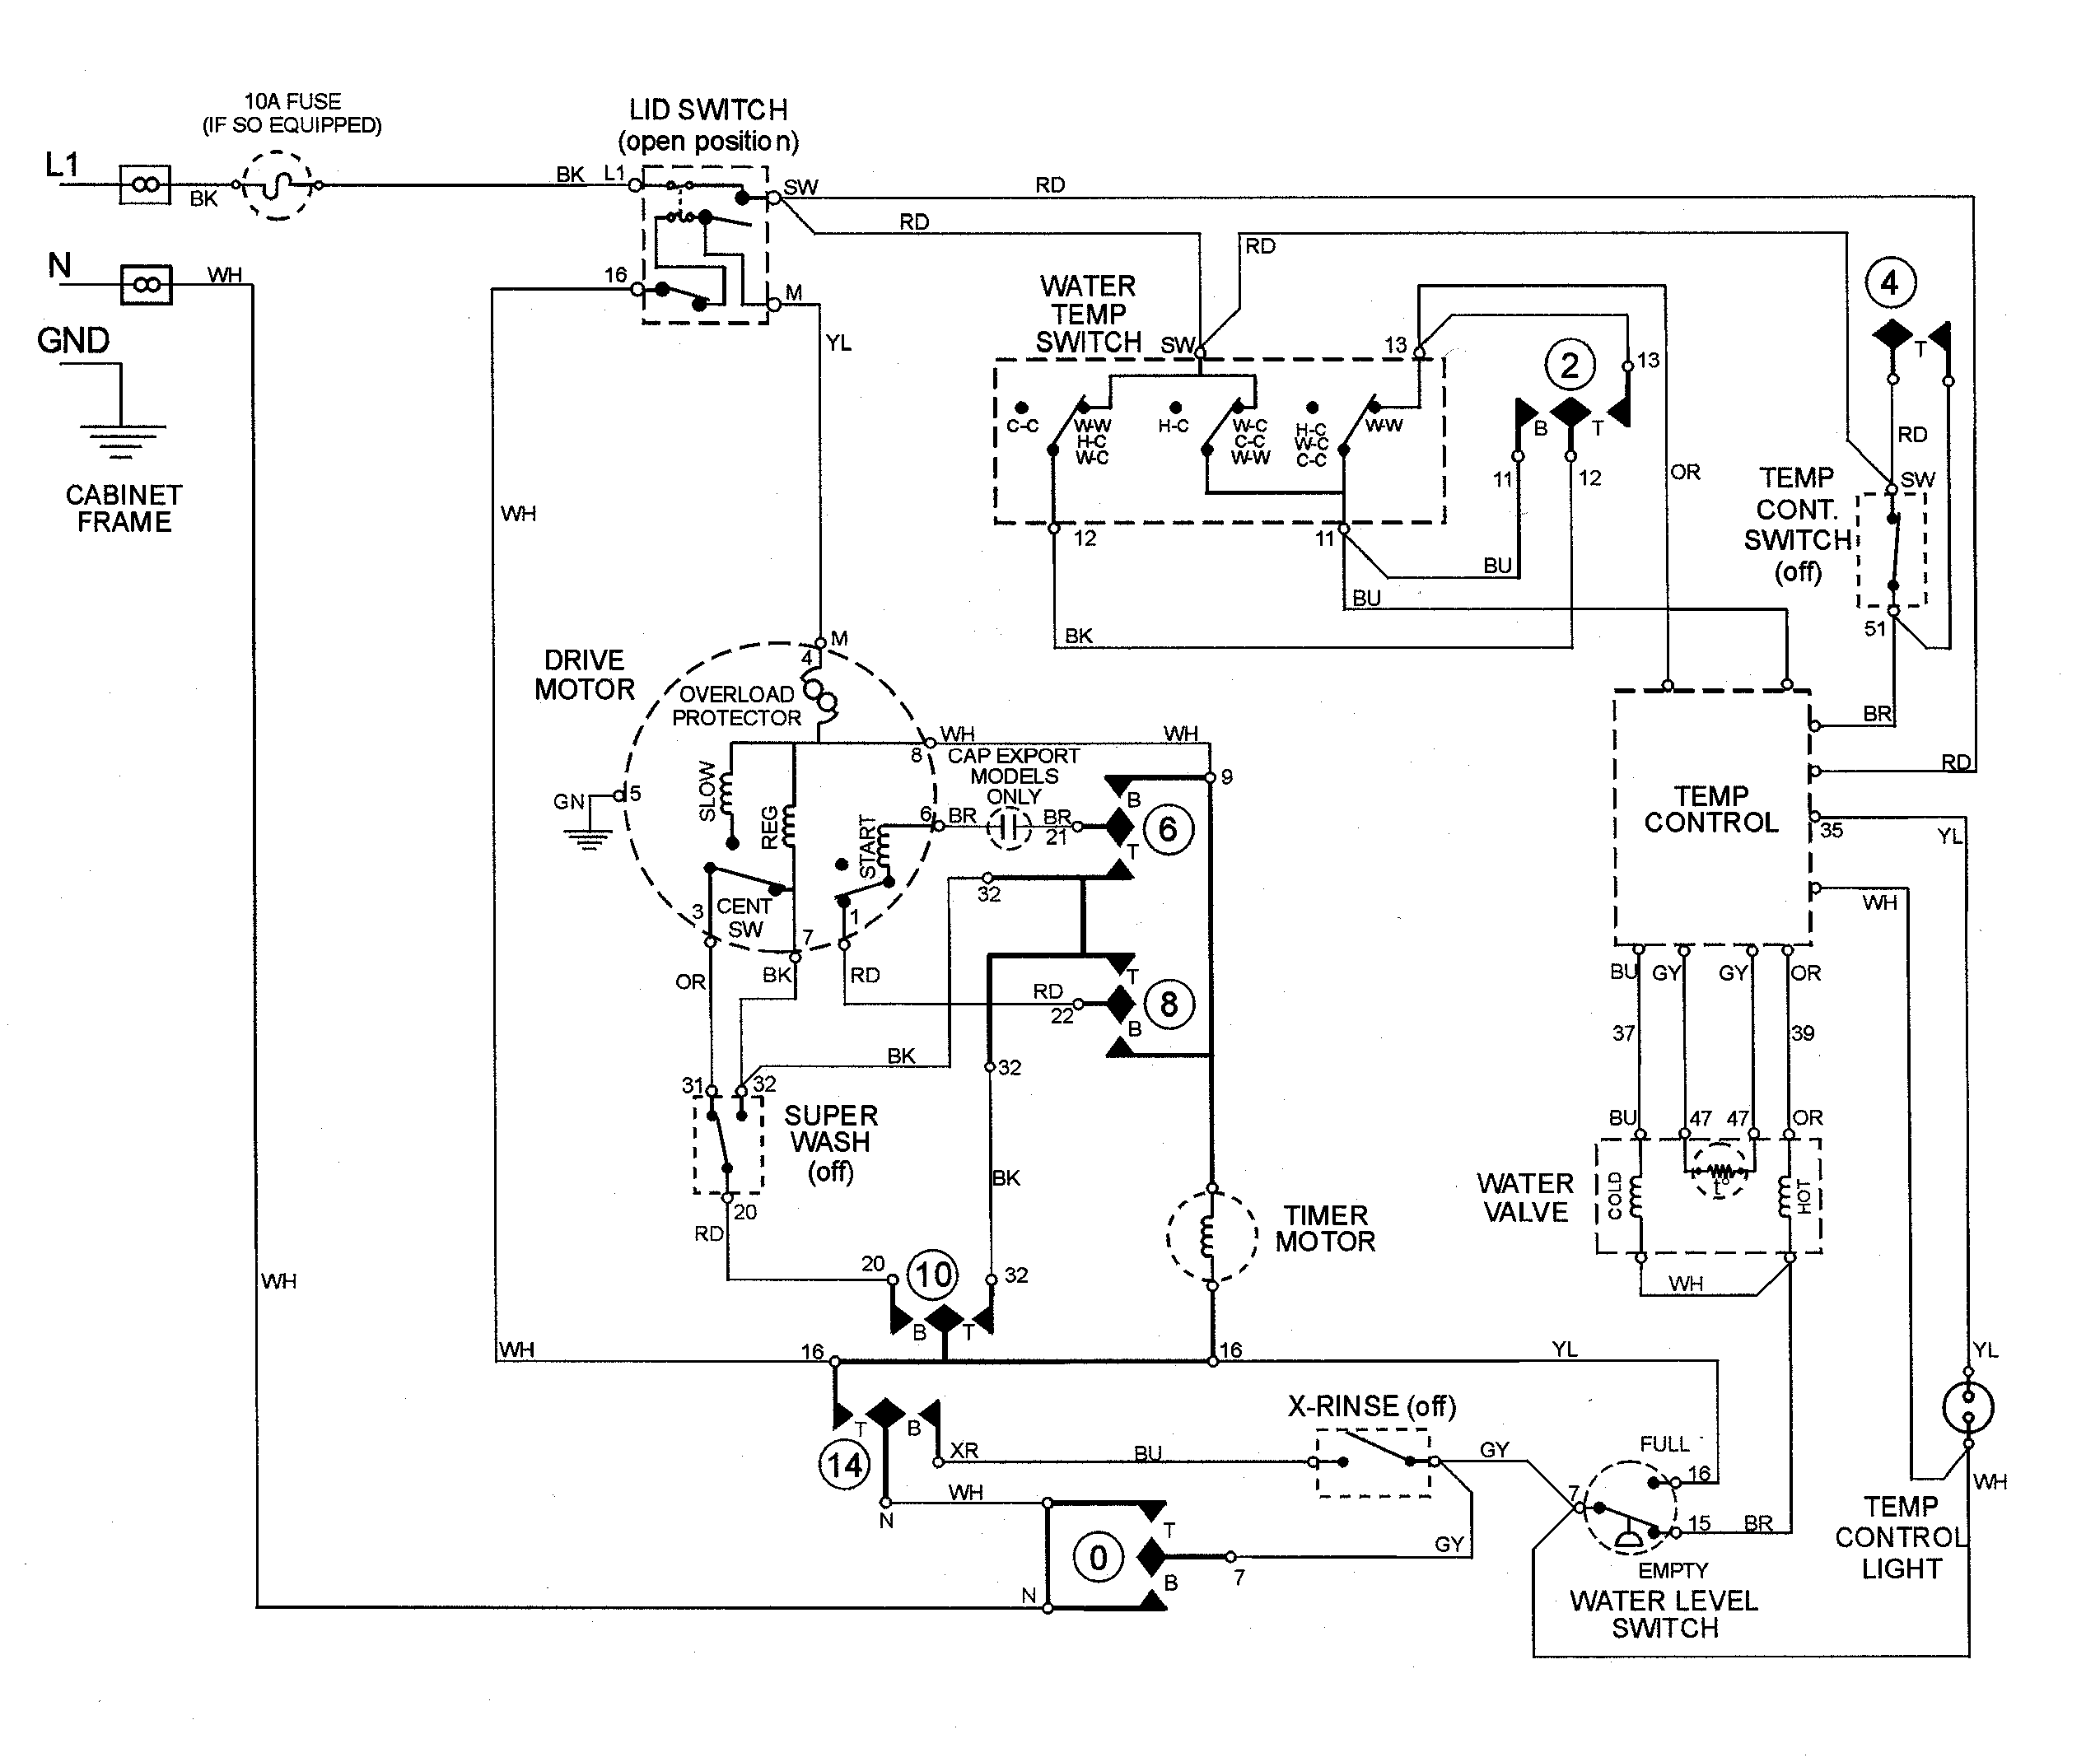 indesit washing machine wiring diagram de9b7 of diagram washing wiring machine motor indesit 105tex  washing wiring machine motor indesit